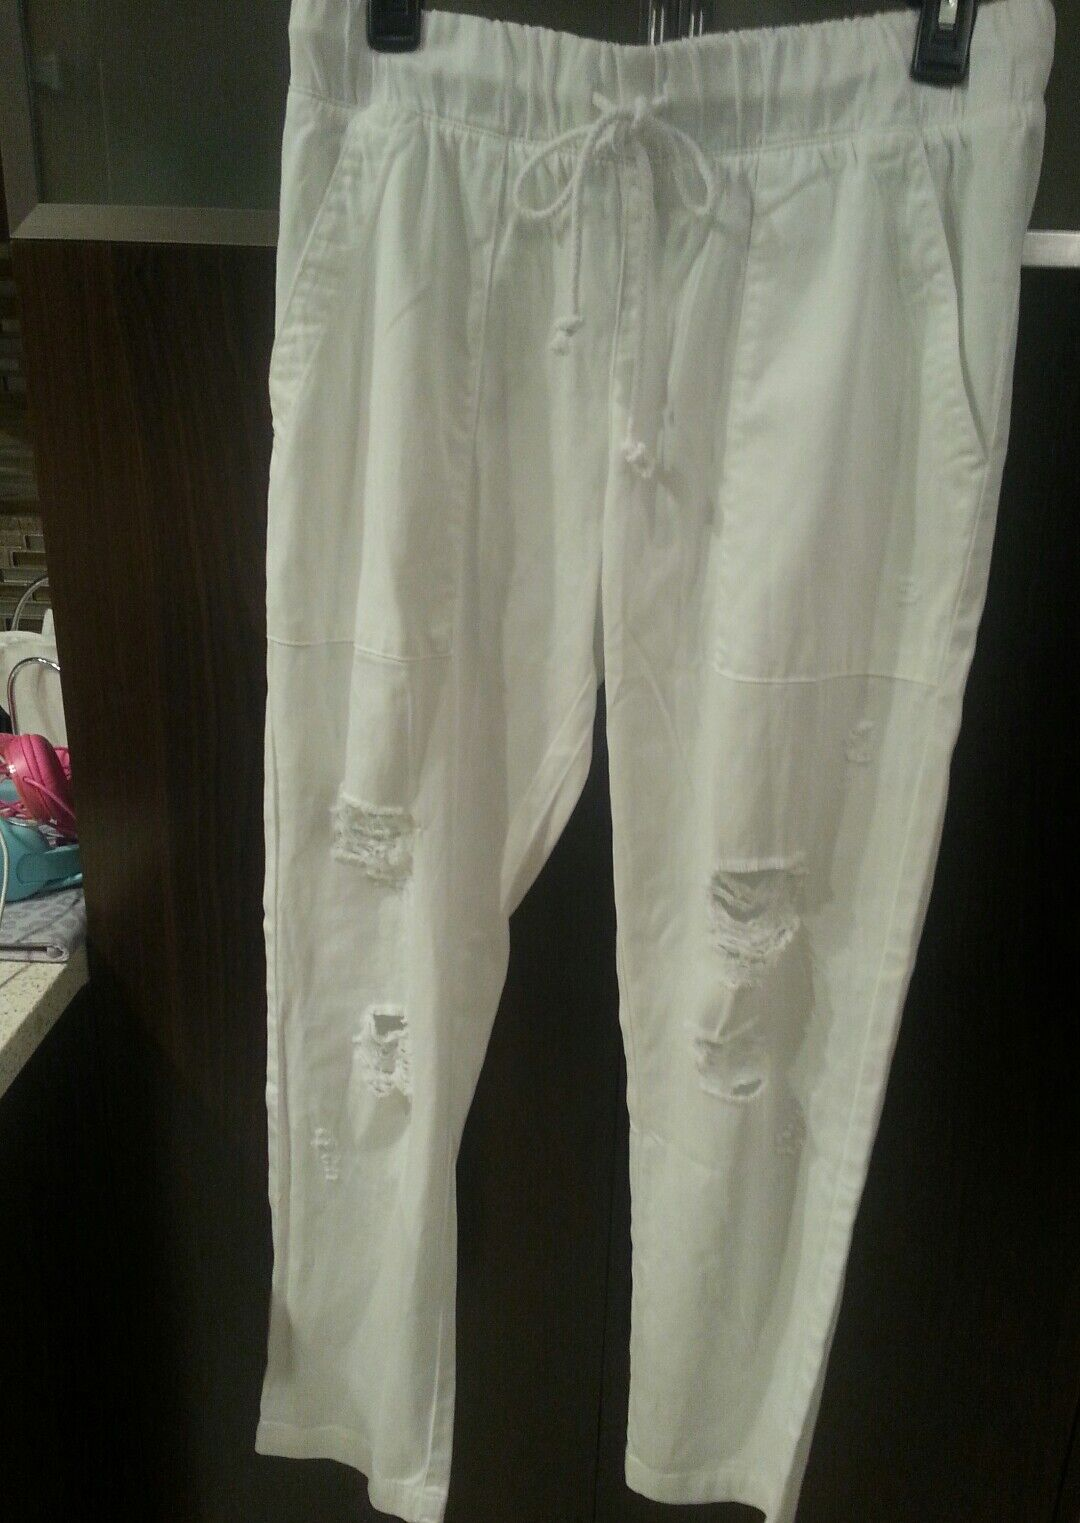 NWOT ANTHROPOLOGIE Cloth & Stone Distressed Weiß Tencel Pants Größe S